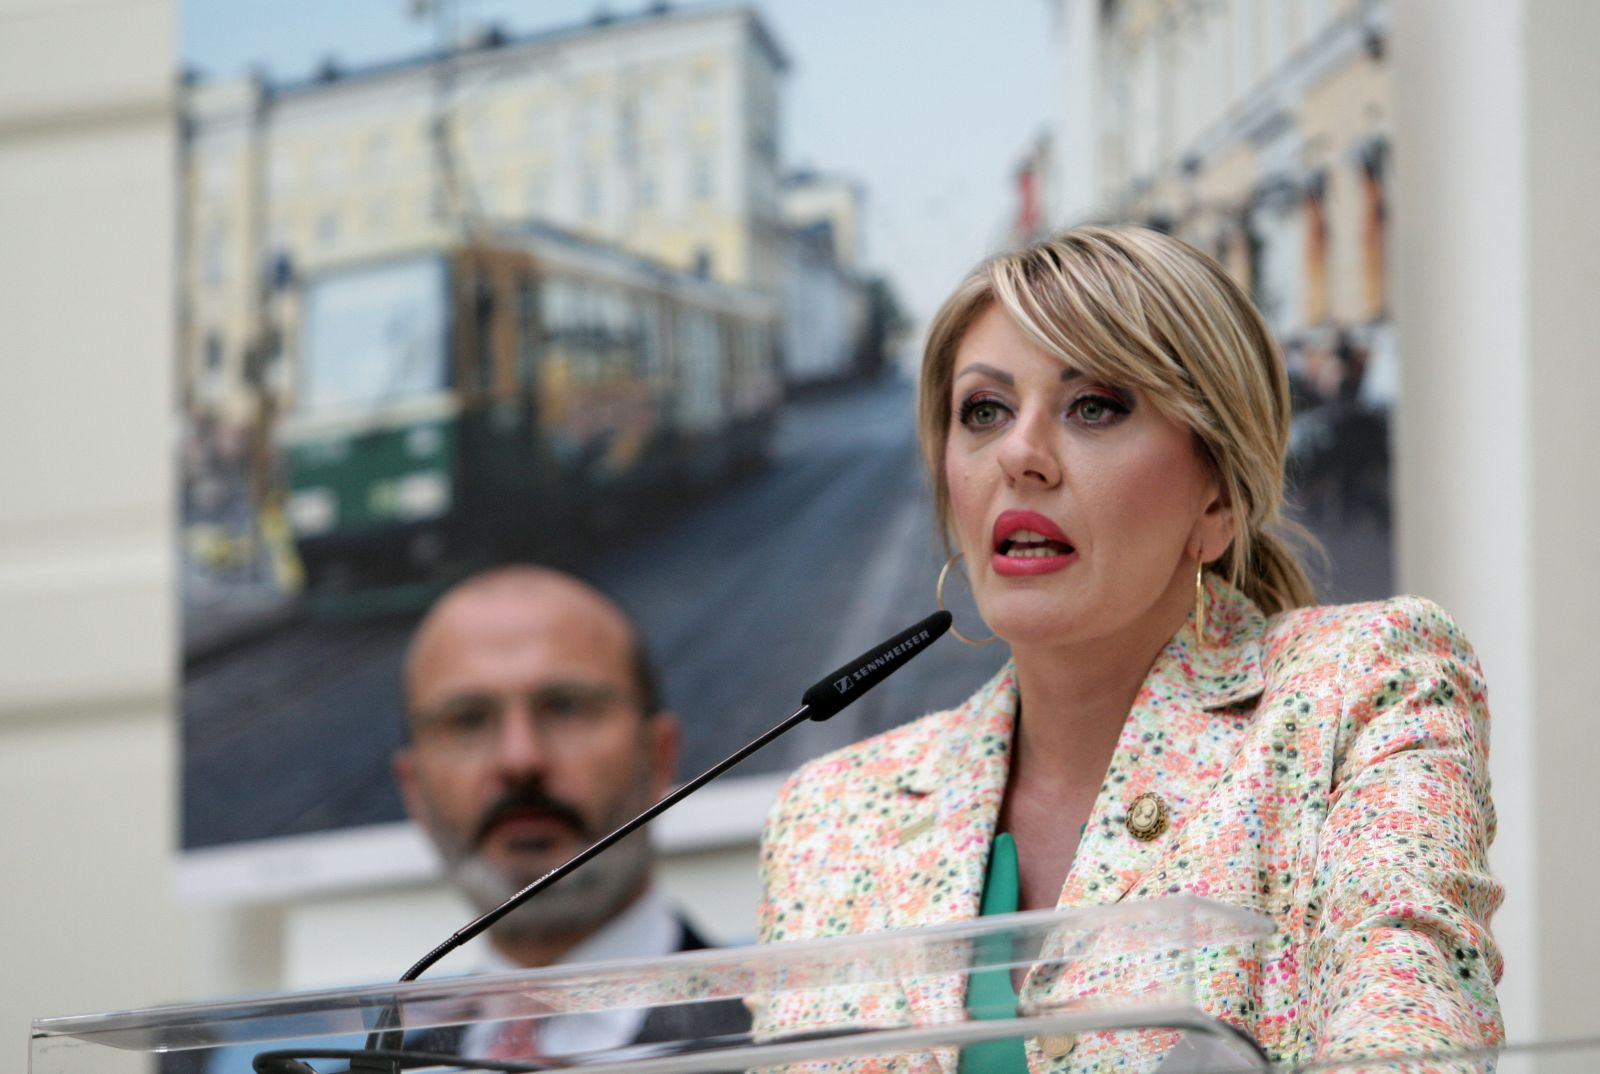 J. Joksimović: A change in the enlargement policy is not paramount to EU reform